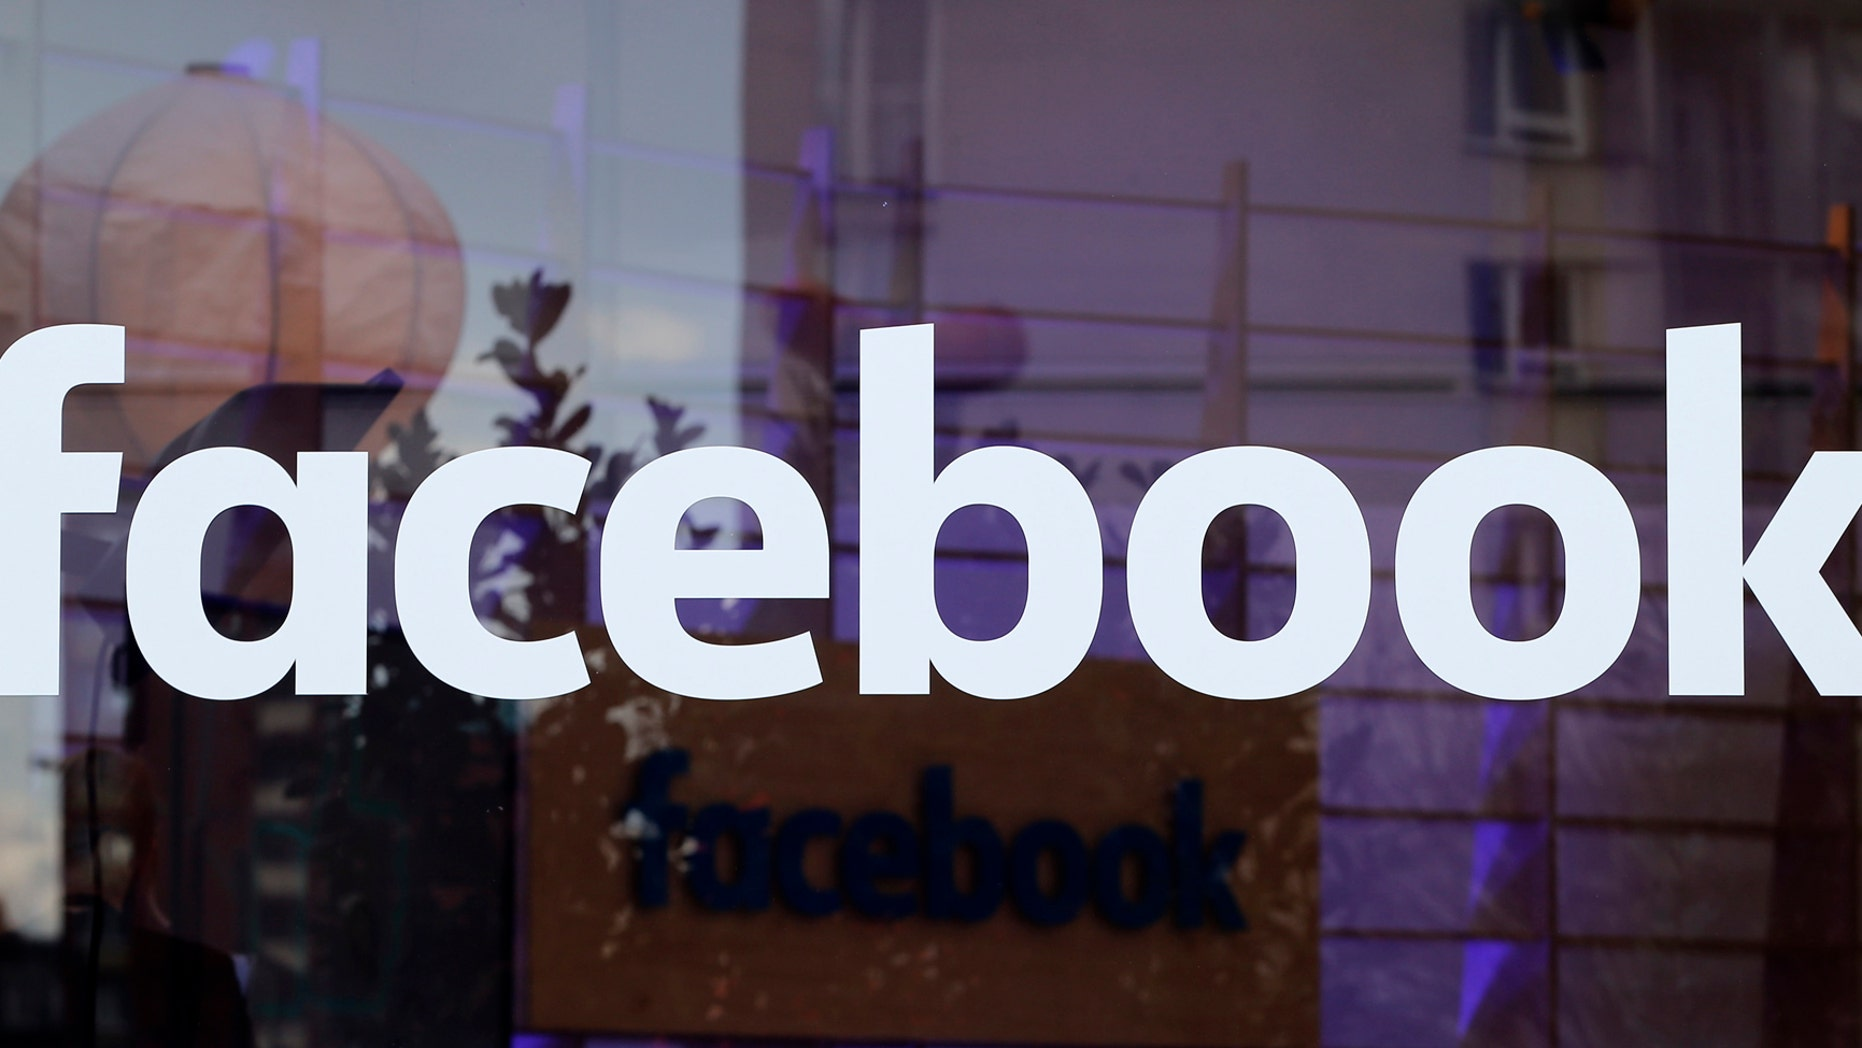 File photo: The logo of Facebook is pictured on a window at new Facebook Innovation Hub during a media tour in Berlin, Germany, February 24, 2016. (REUTERS/Fabrizio Bensch)